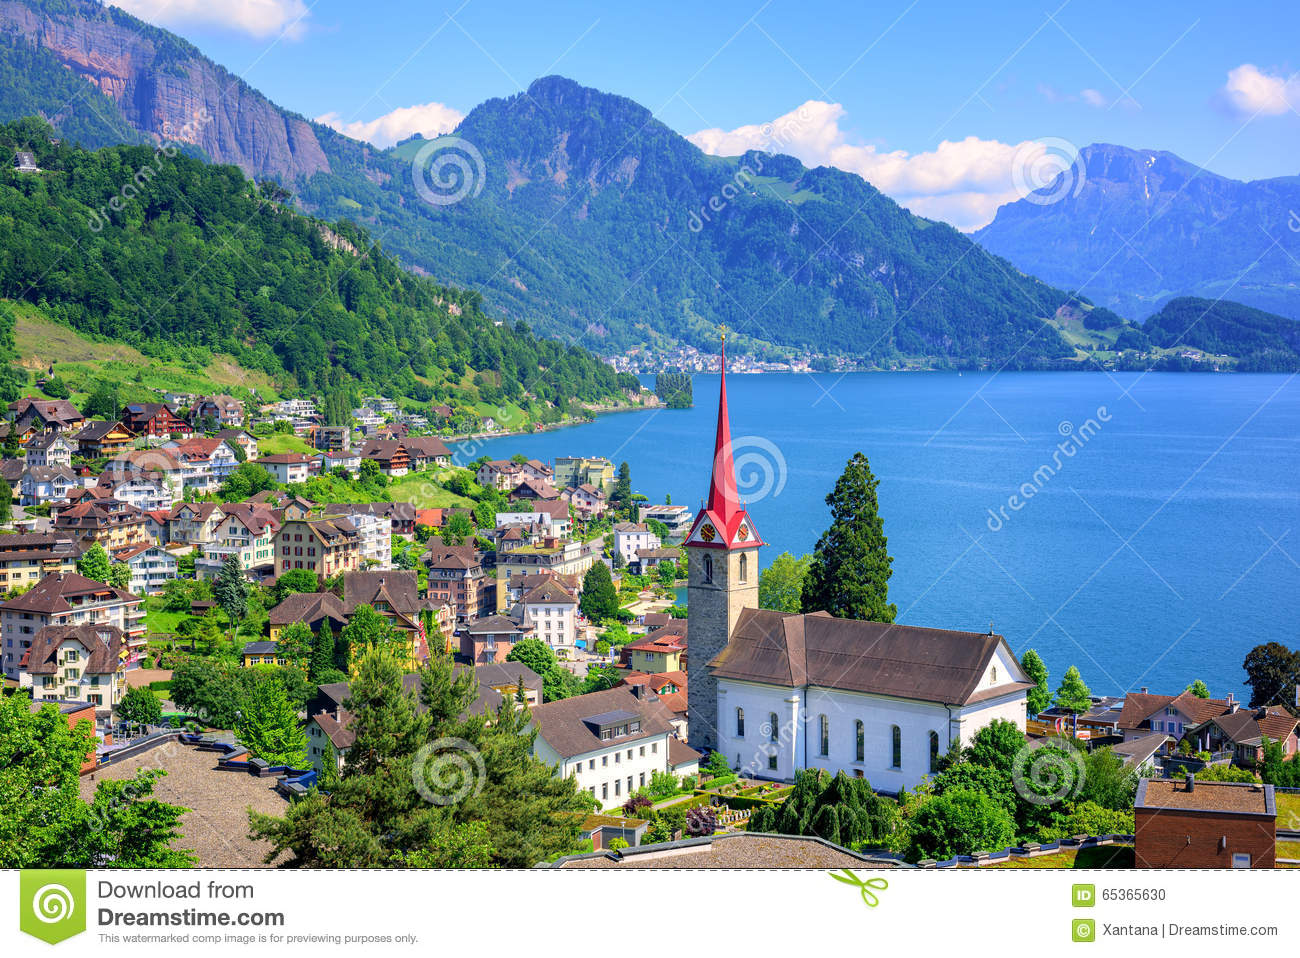 Lake Lucerne And Alps Mountains By Weggis, Switzerland Stock Photo.